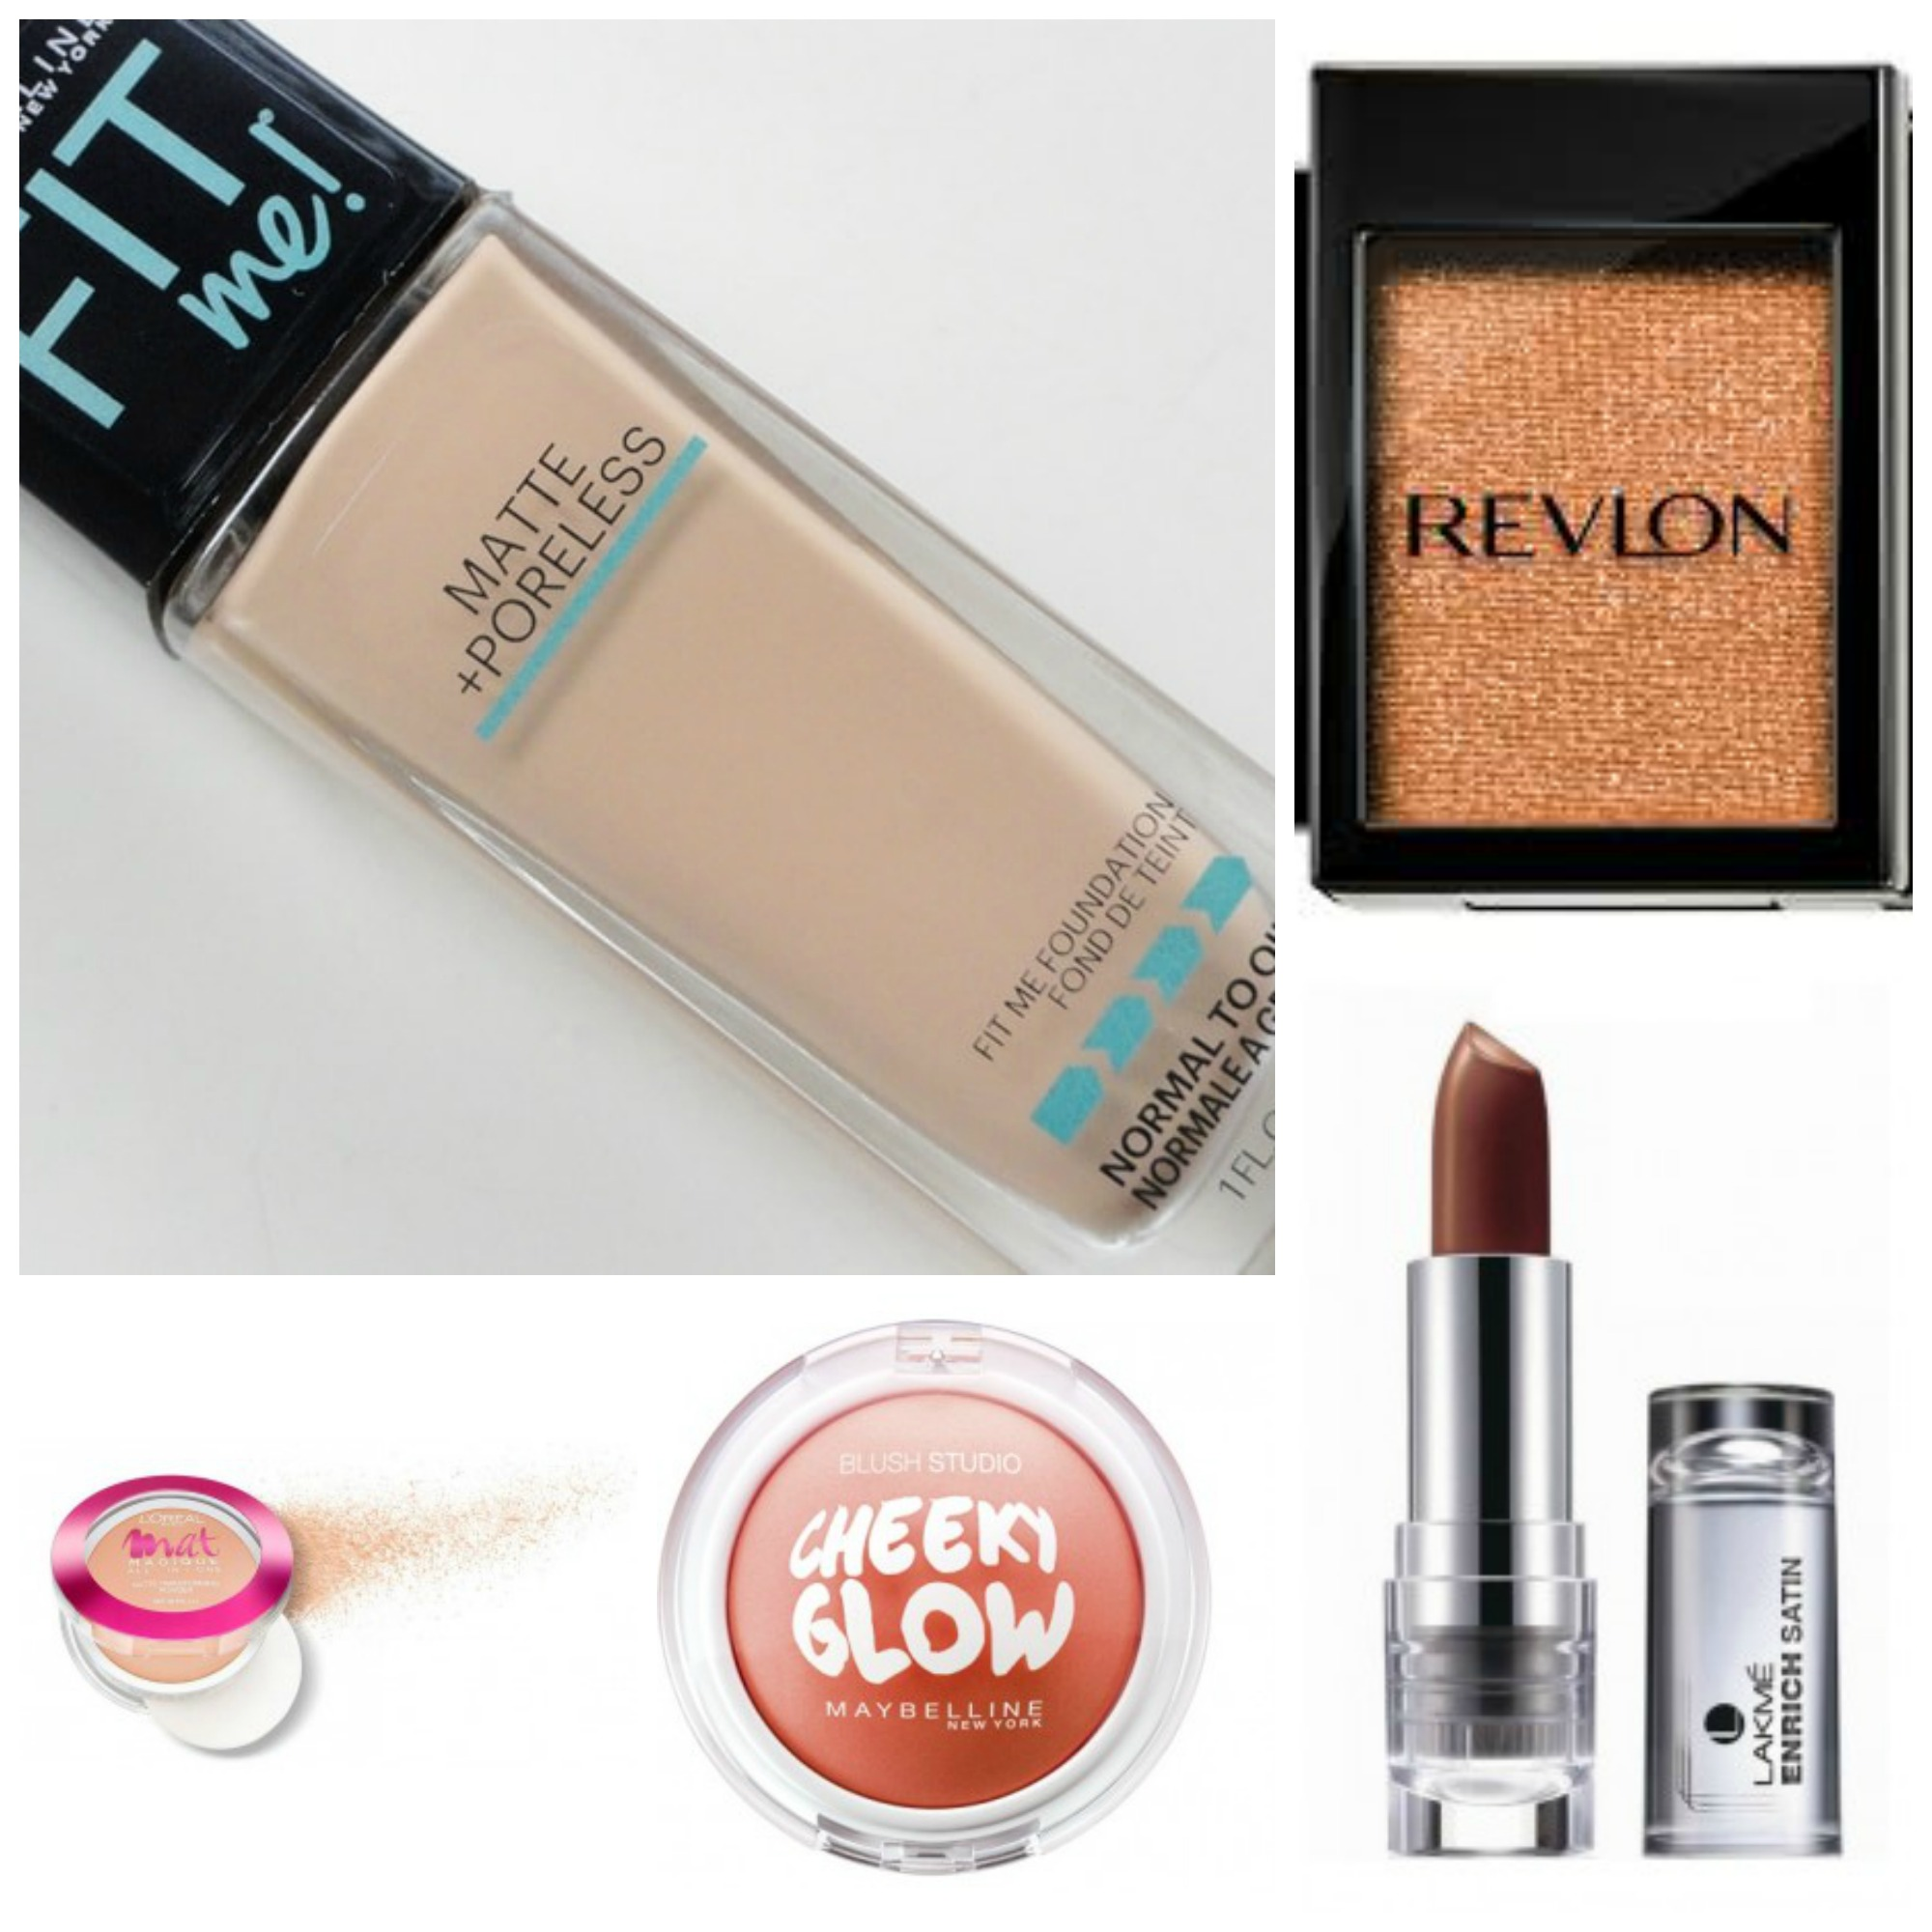 budget beuaty, 5 under 500, drugstore products, beauty products, maybelline fit me foundation, maybelline cheeky glow, loreal mat magique, lakme enrich lipstick, revlon links eye shadow